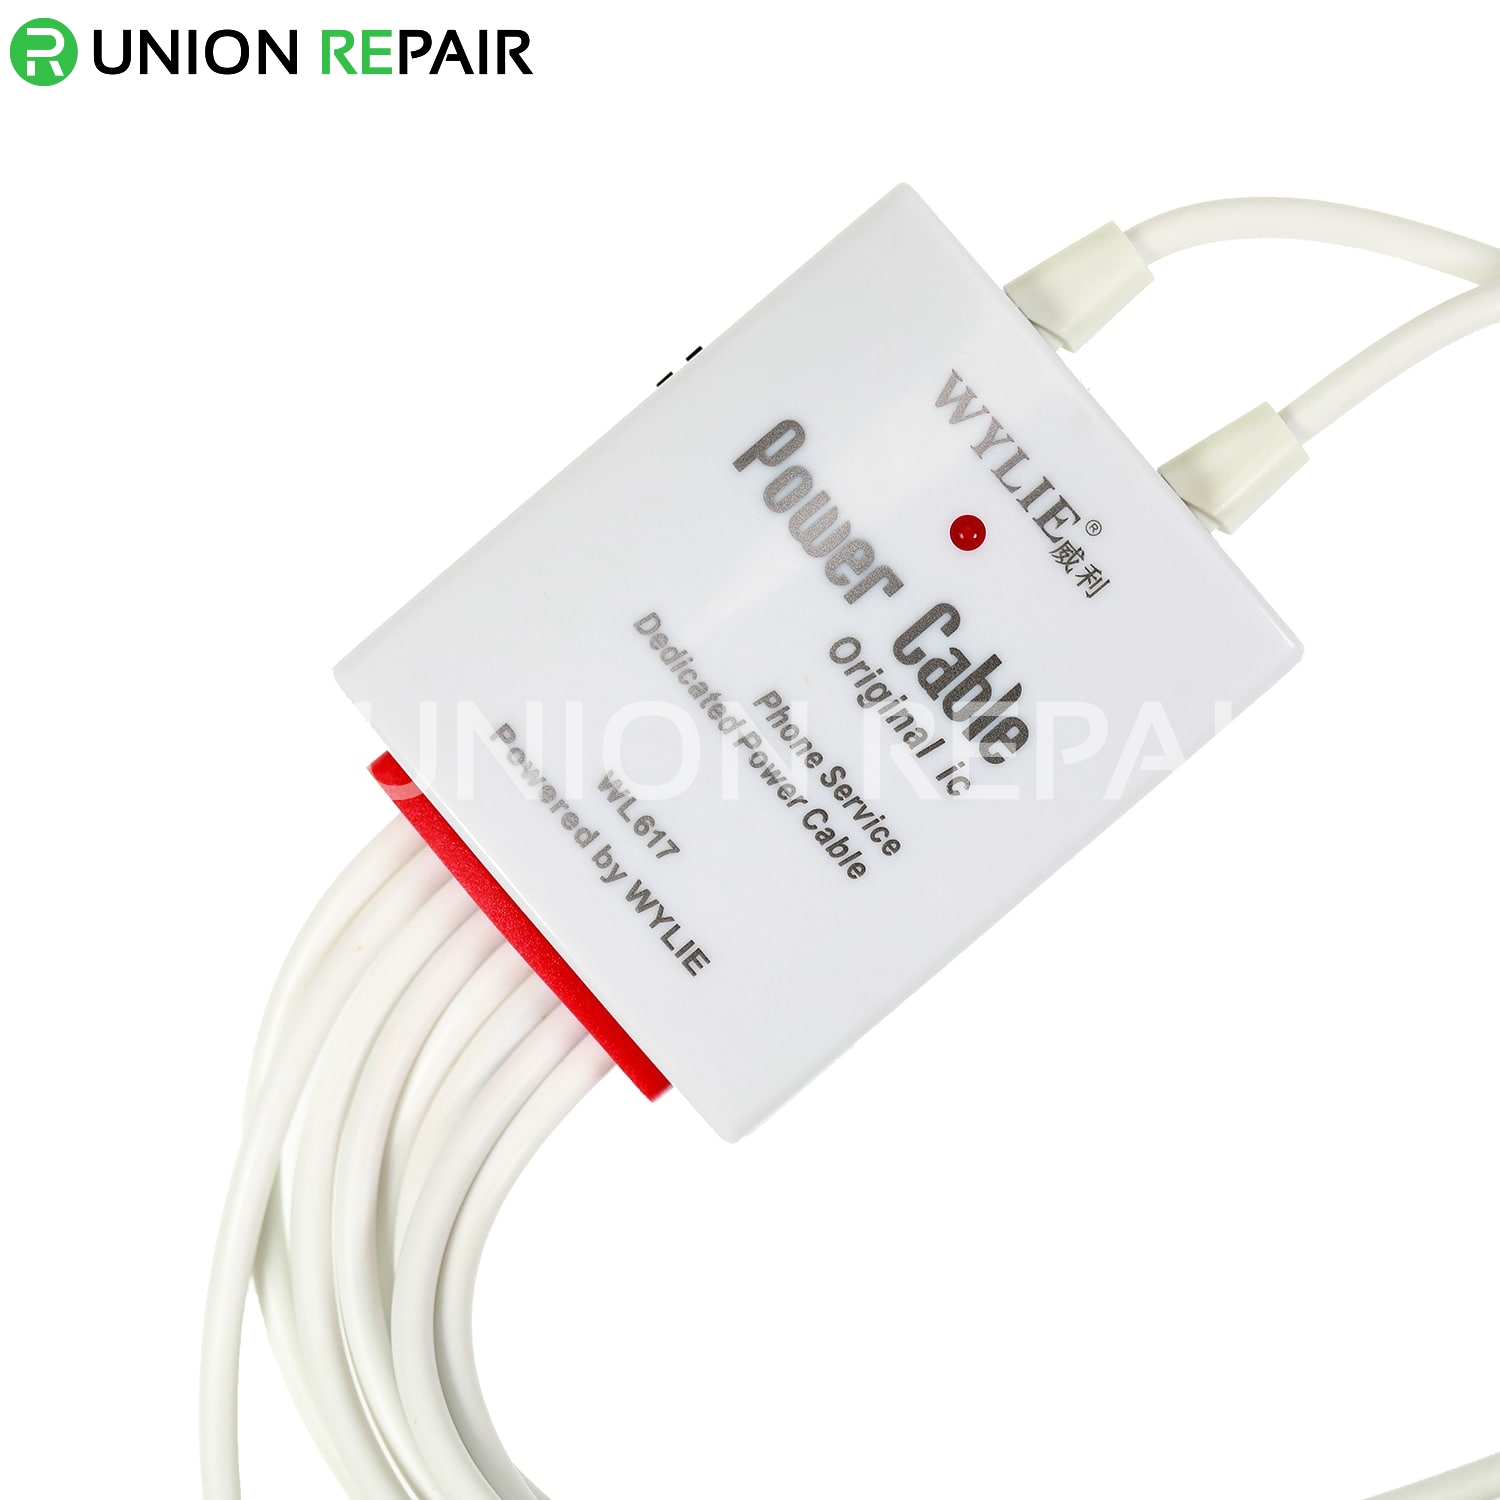 WYLIE WL617 Original IC Service Dedicated Power Cable For iPhone 5/5S/5C/6/6p/7/7 /8 /8p/X /XS /XSMAX/XR